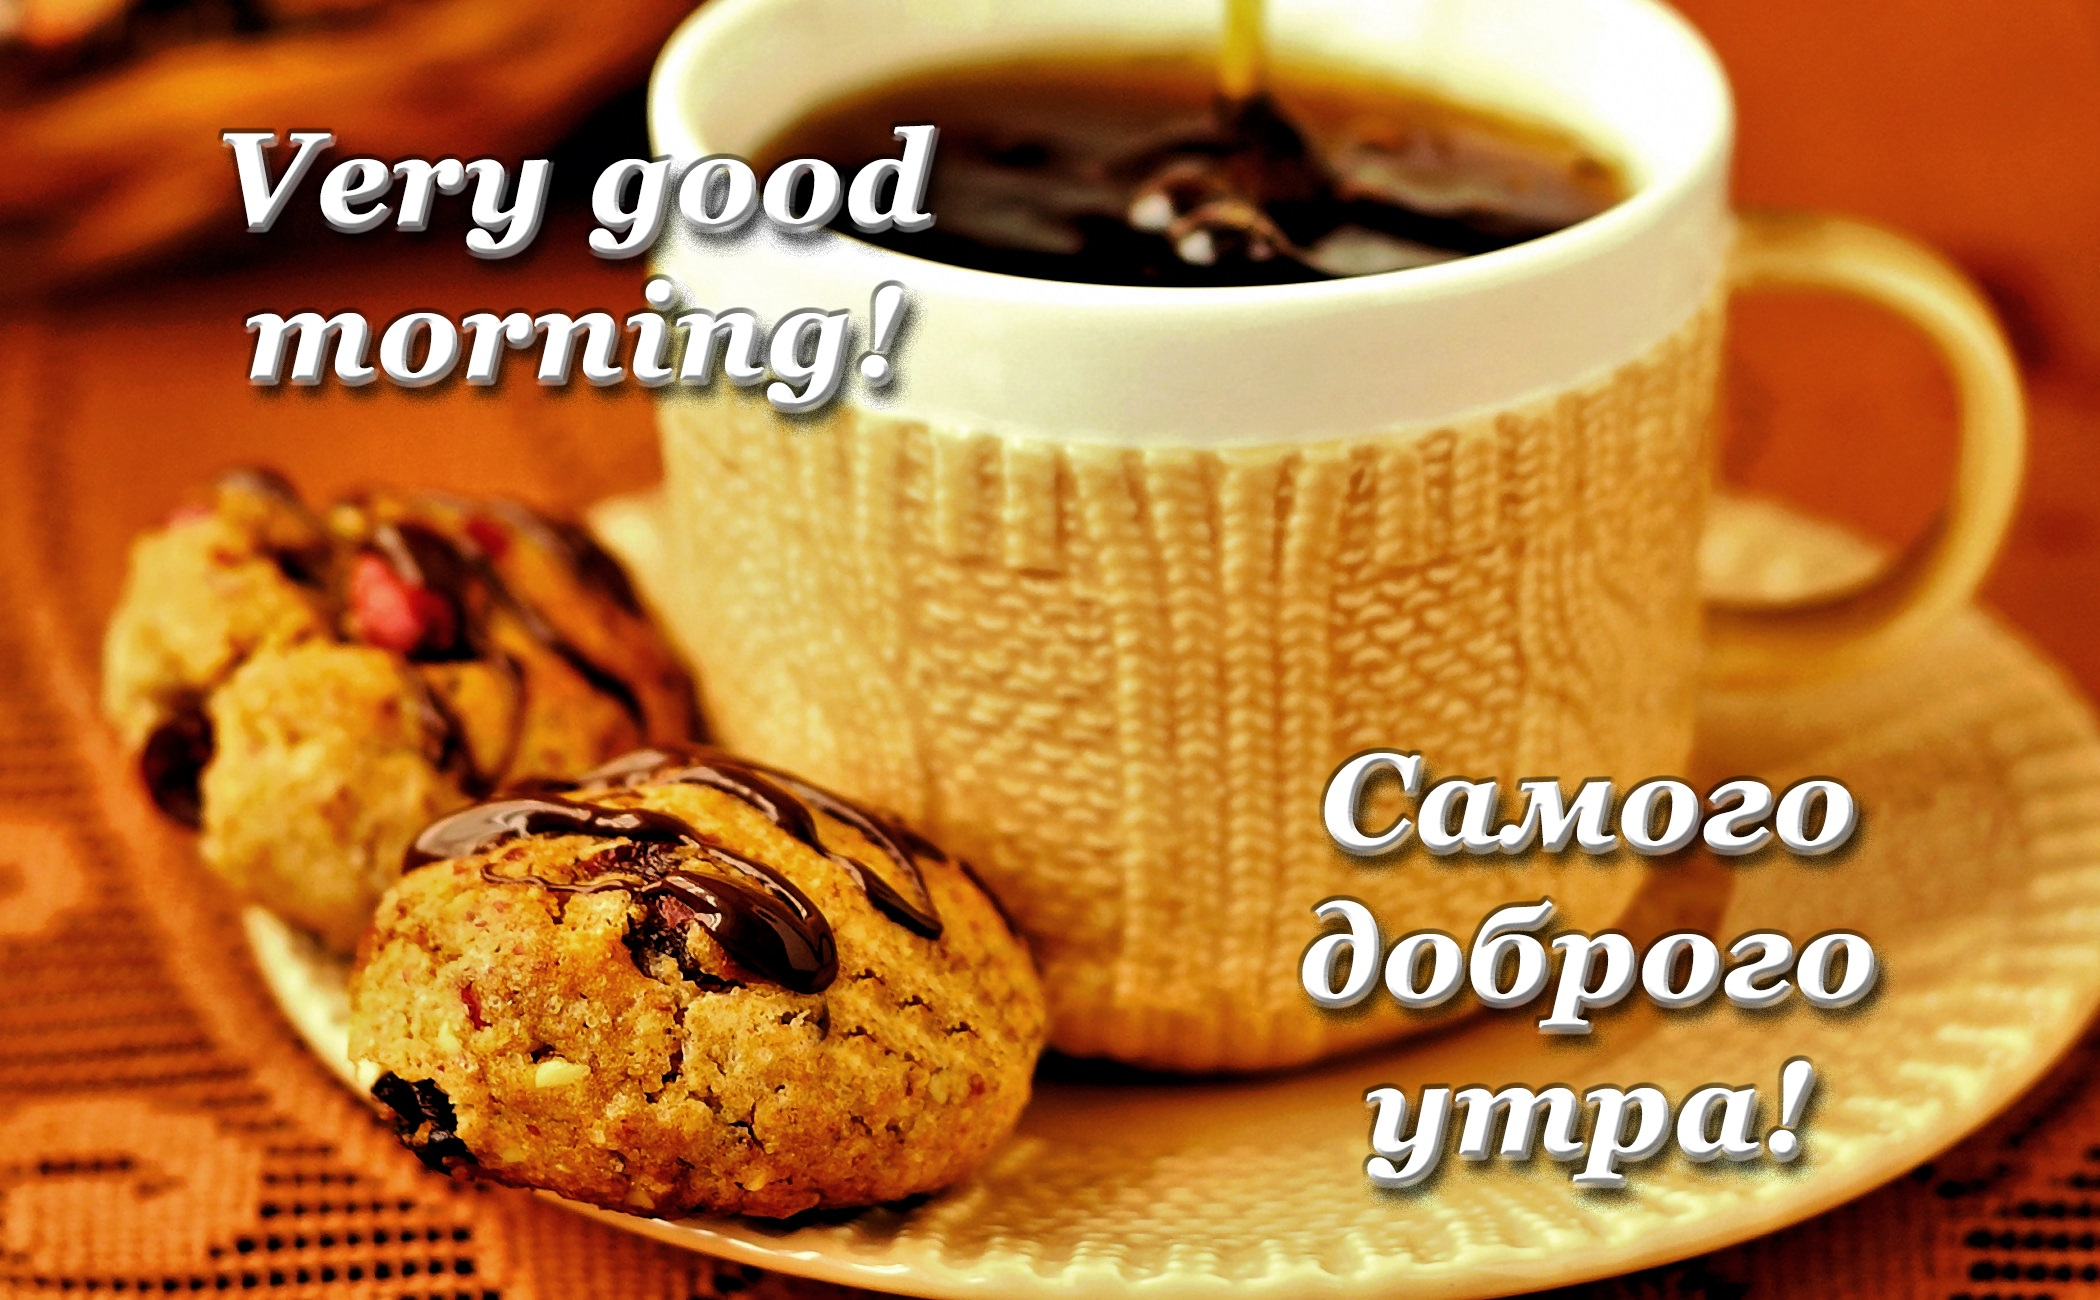 Good Morning Greetings In Russian : February from the russian web… a very good